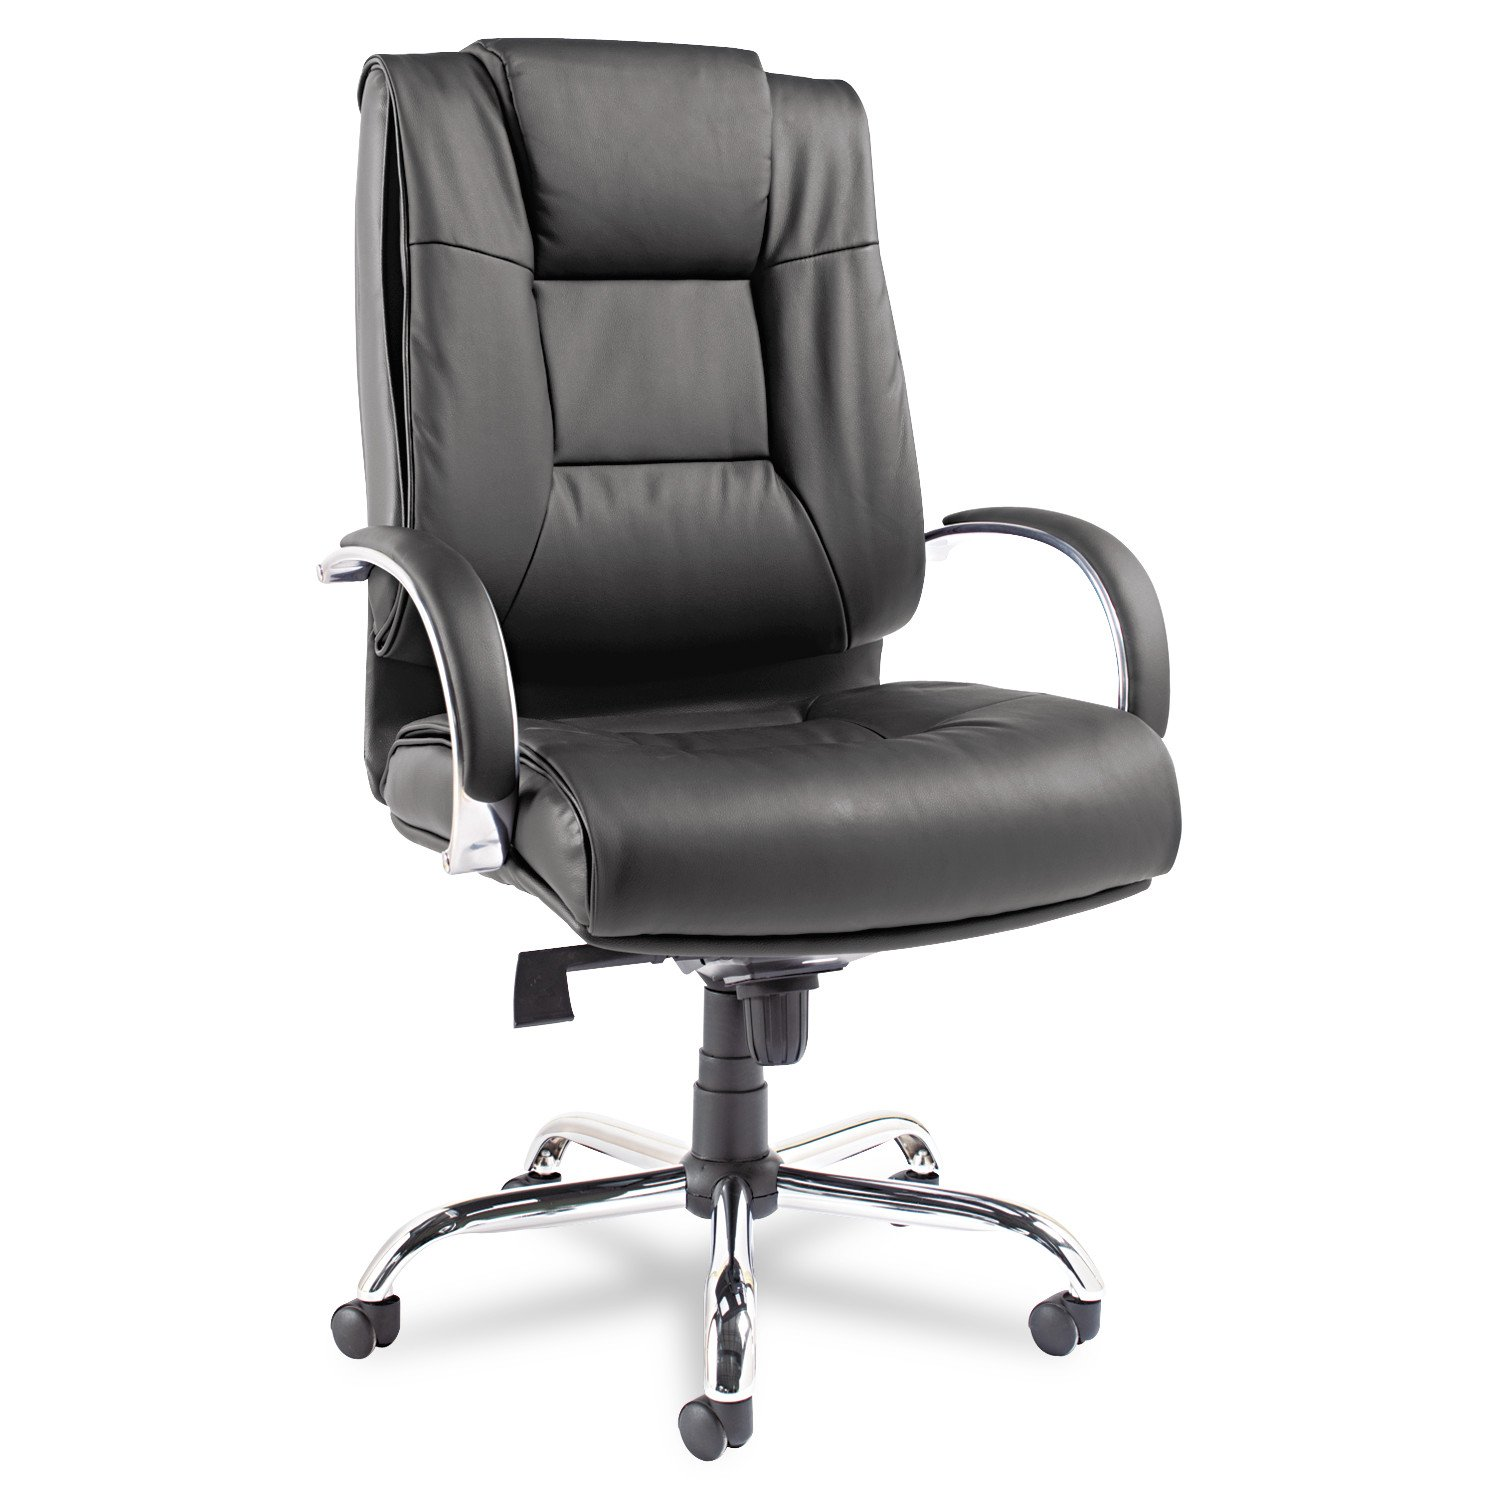 ergonomic computer chair for large people